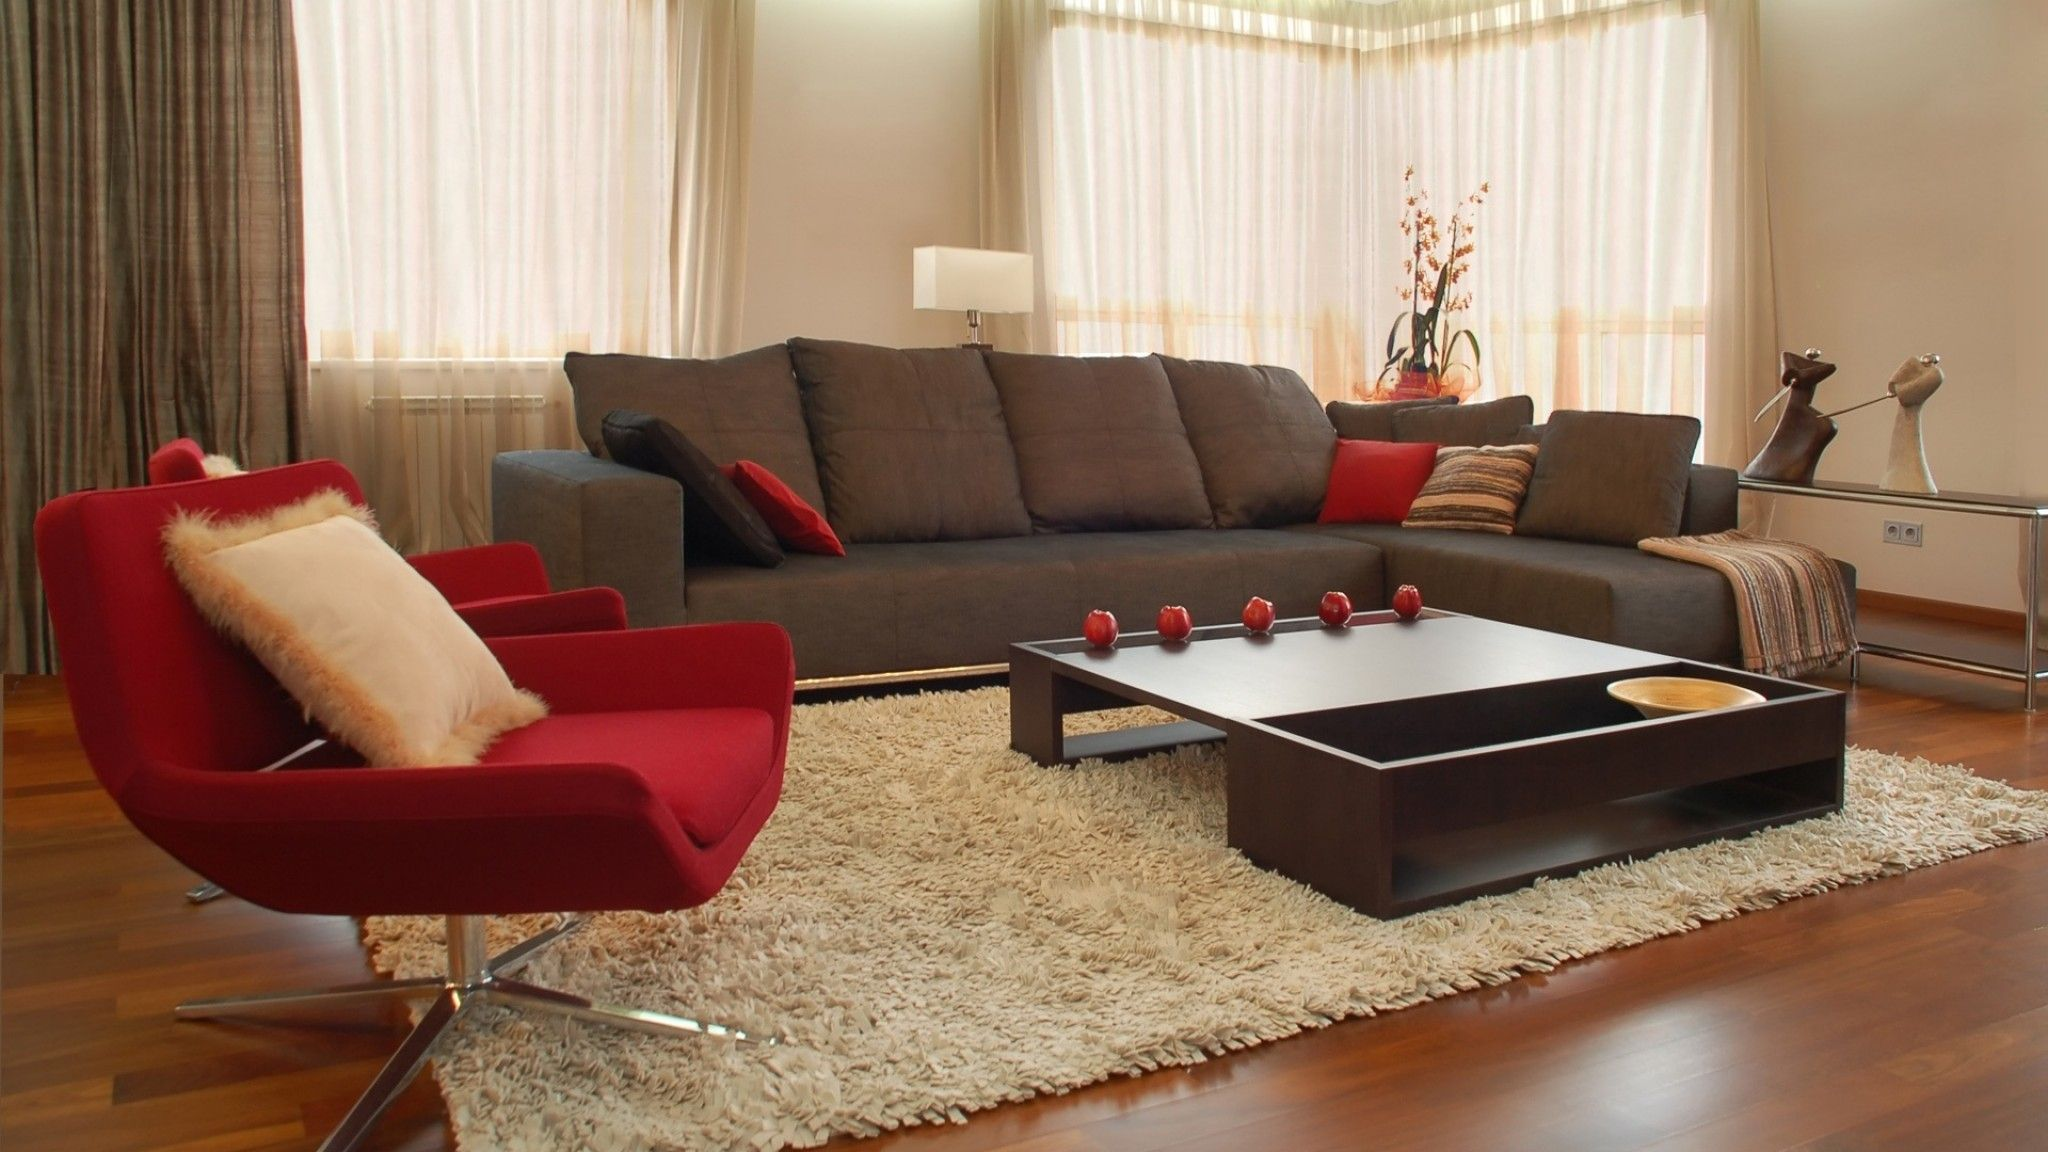 living room brown couch | bedroom and living room image collections